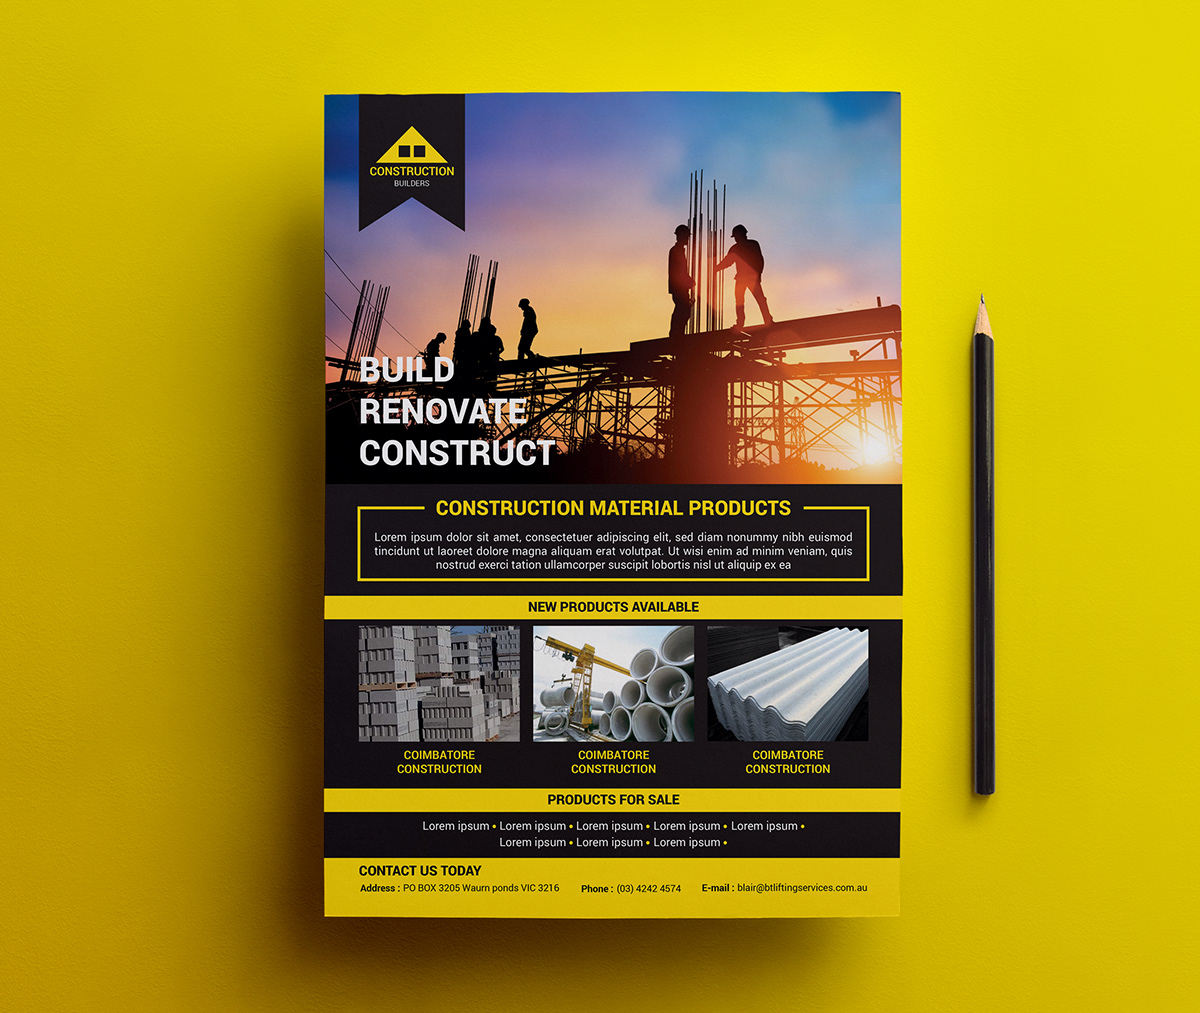 Construction Flyer on Wacom Gallery